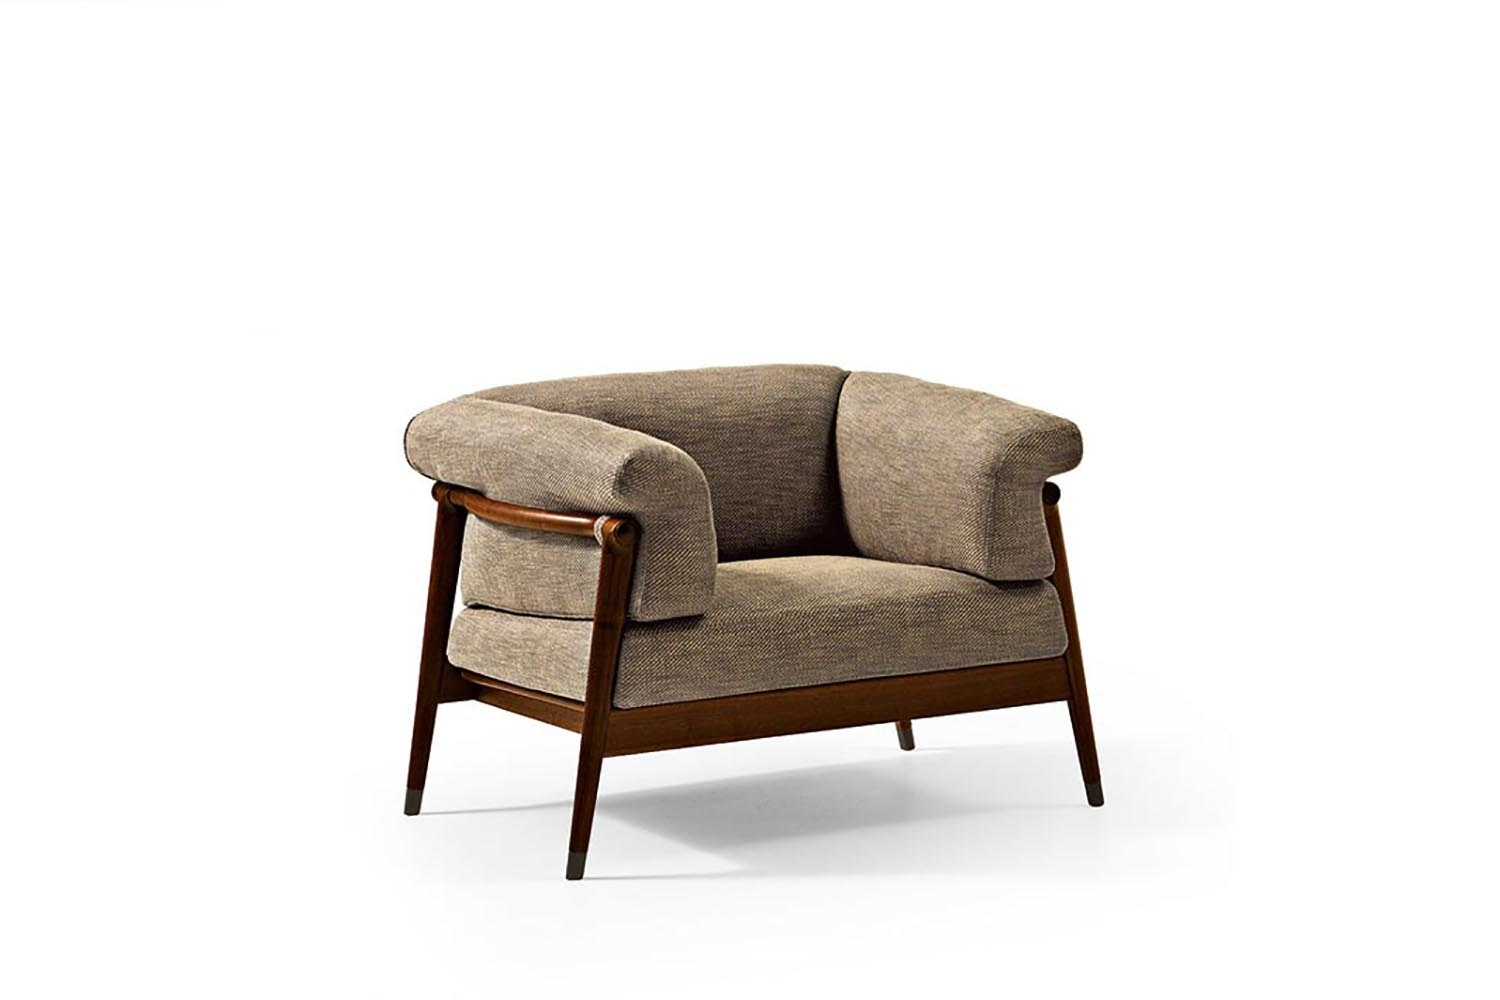 Derby Armchair by Laura Silvestrini for Giorgetti